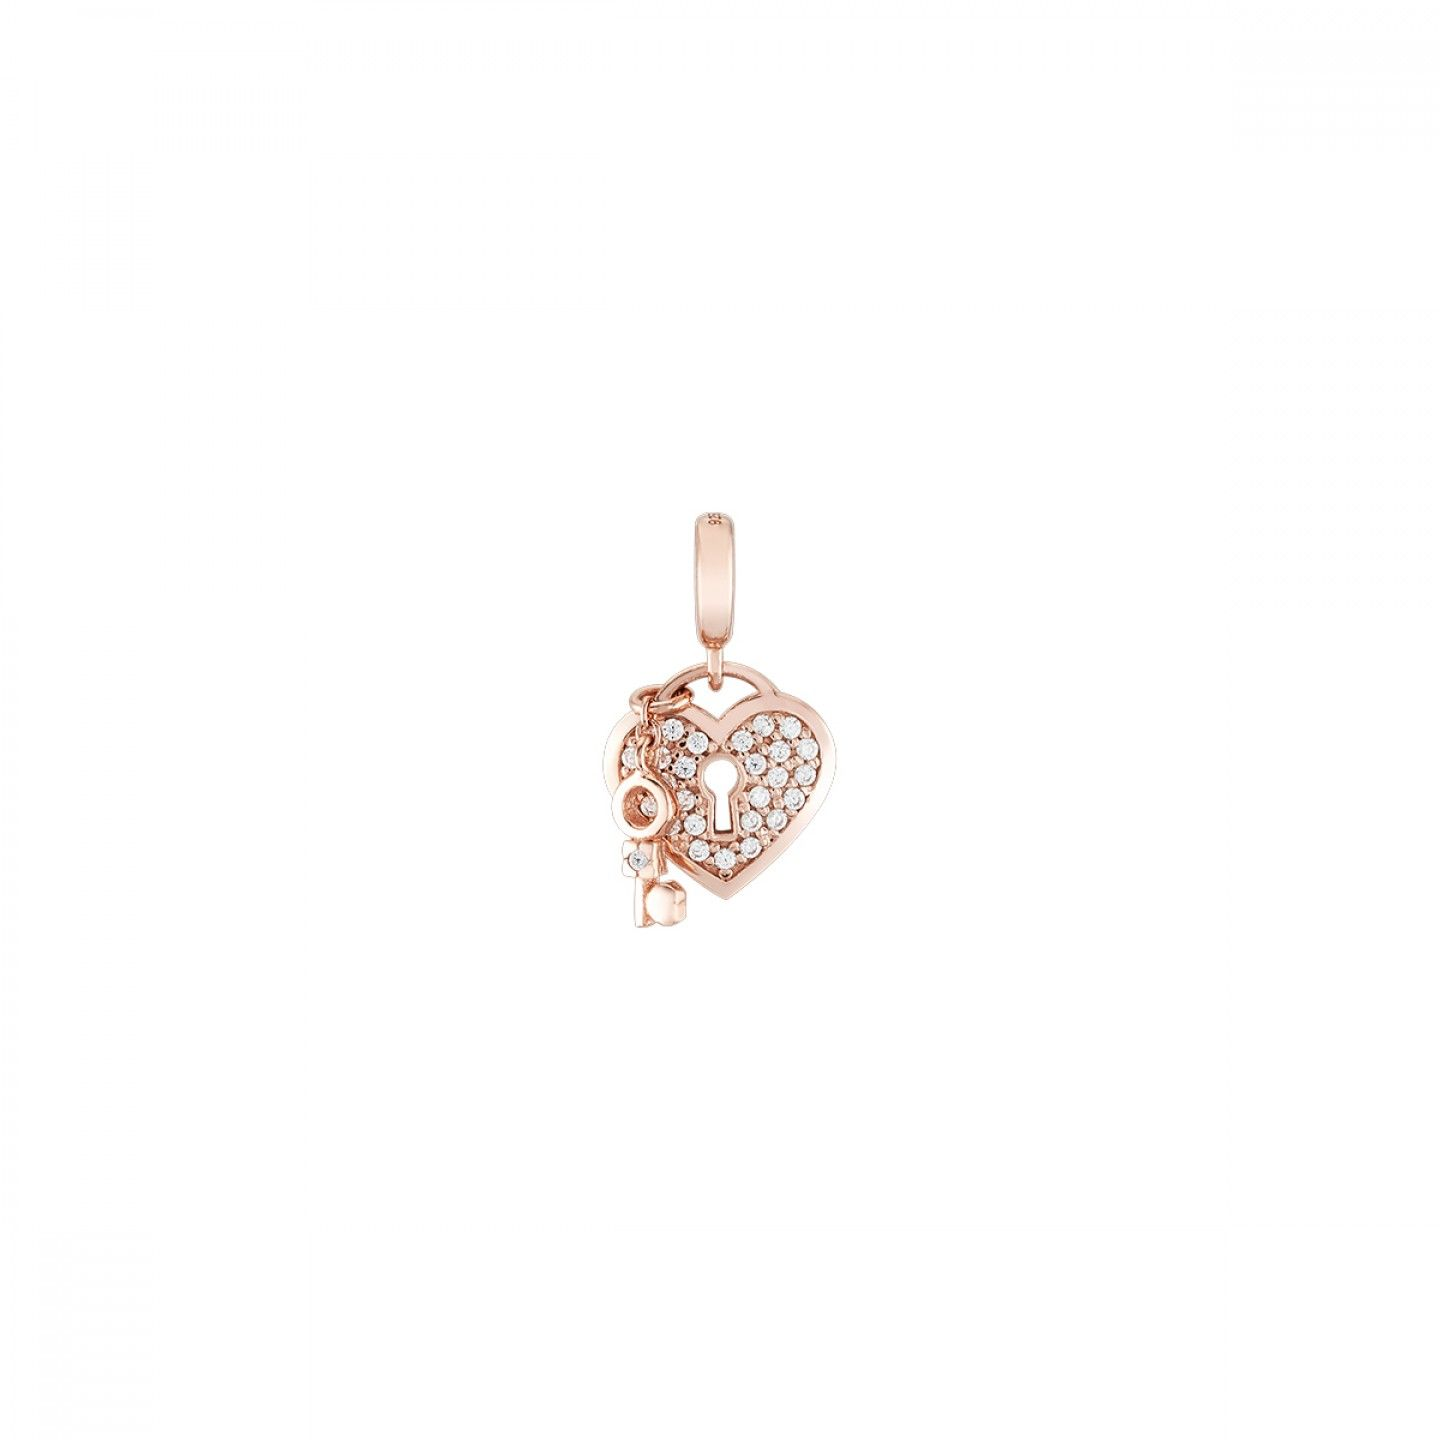 Charm BOW HAPPY Love Stories Lock & Key Rose Gold